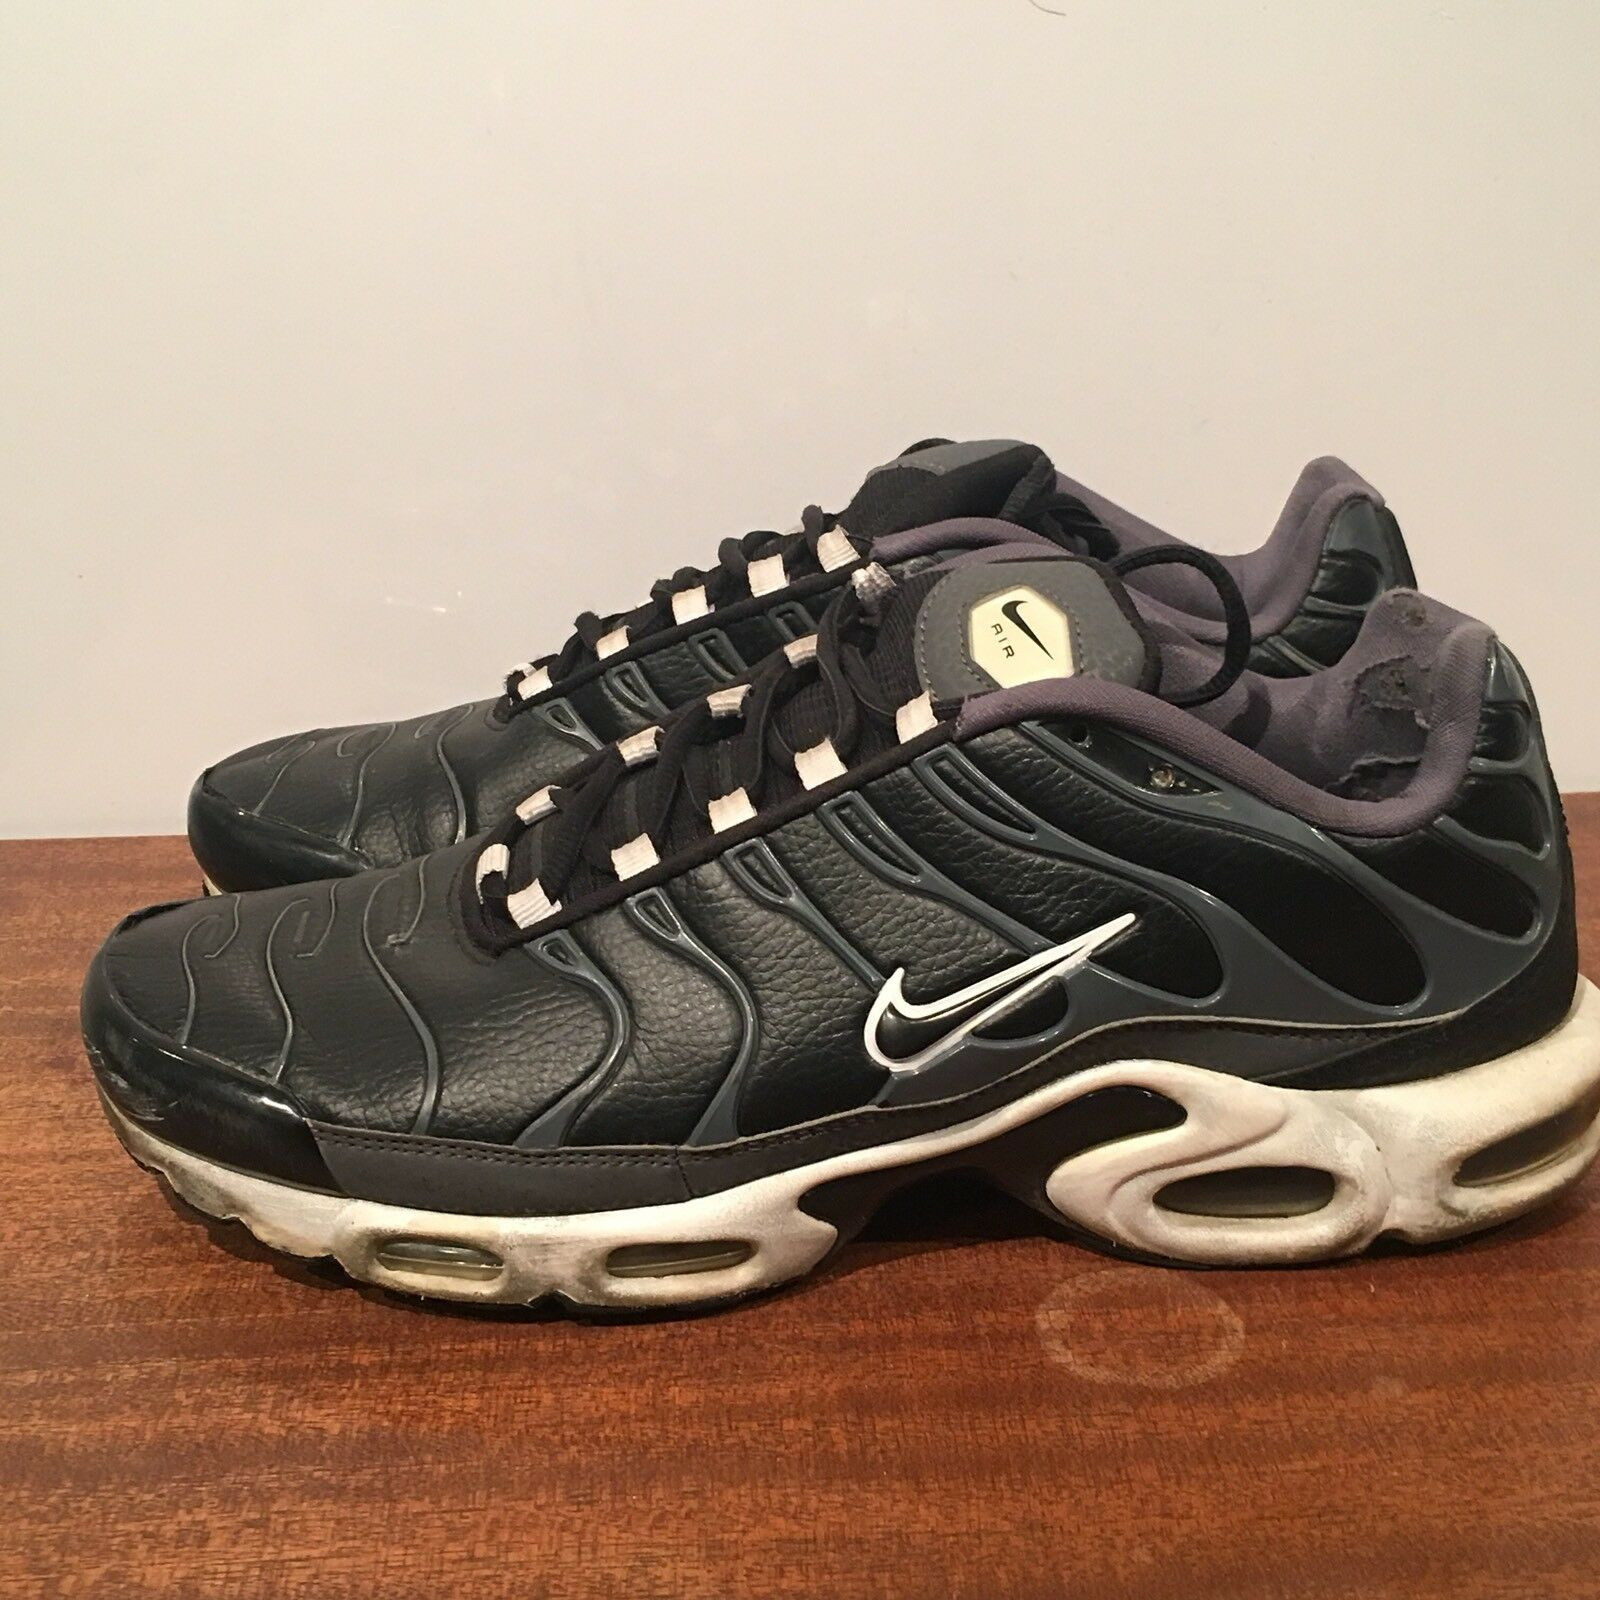 Nike Air Gris-Blanco Max Plus Zapatos TN negro / negro Gris-Blanco Air 604133-099 SZ 10 9fe94e